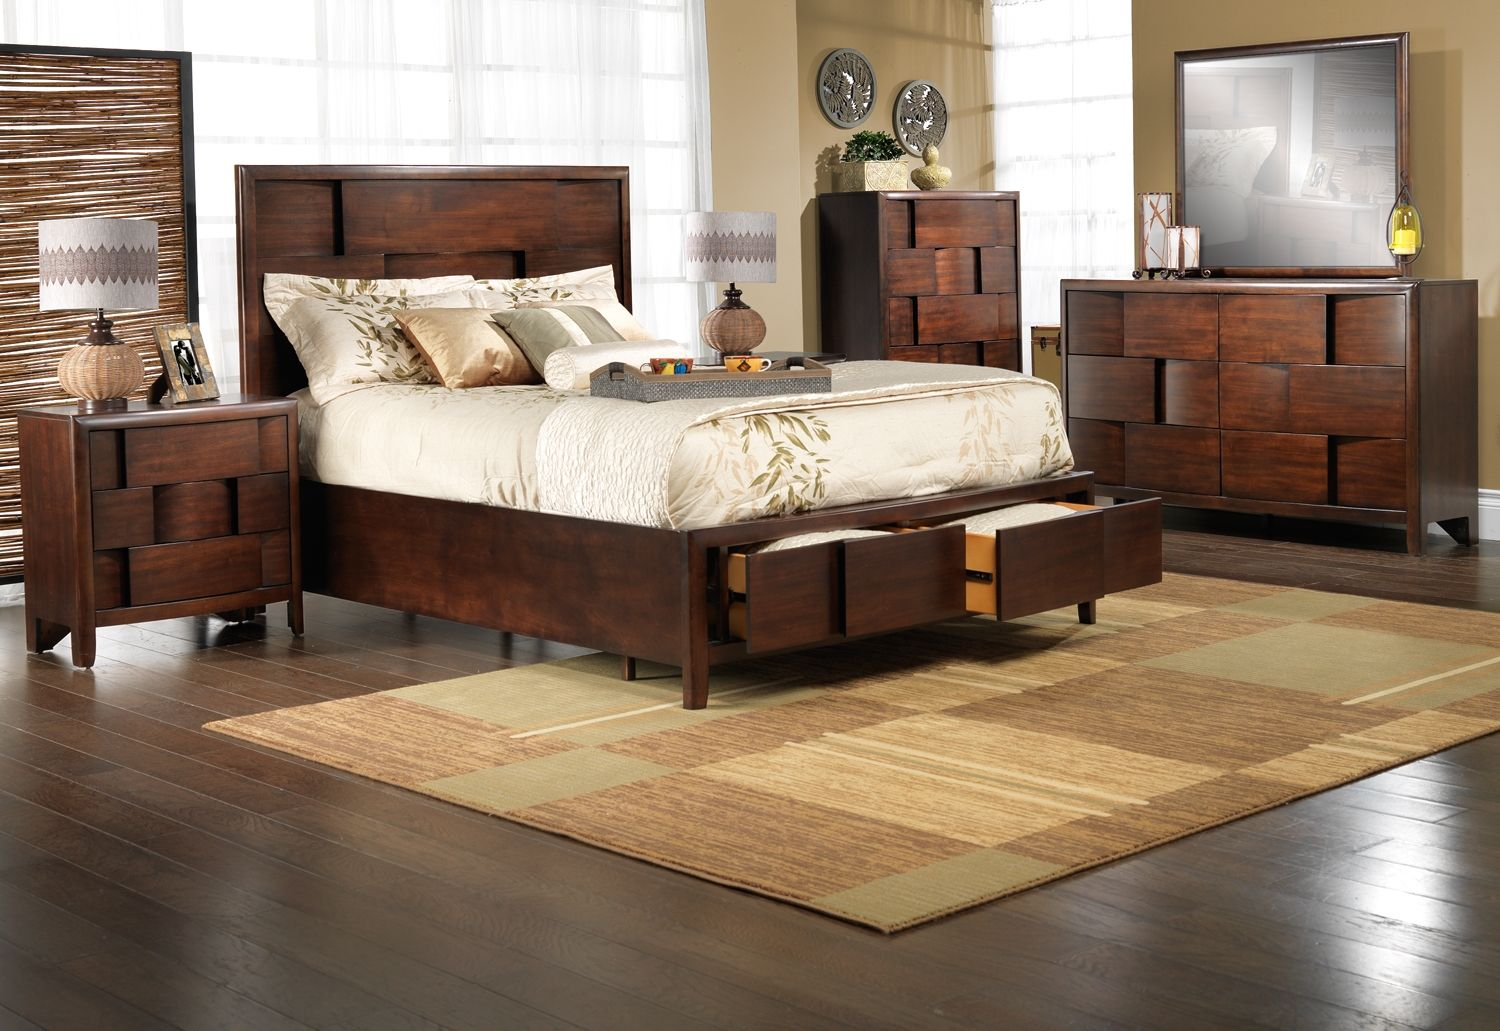 Nova Bedroom Collection Leon's King bedroom sets